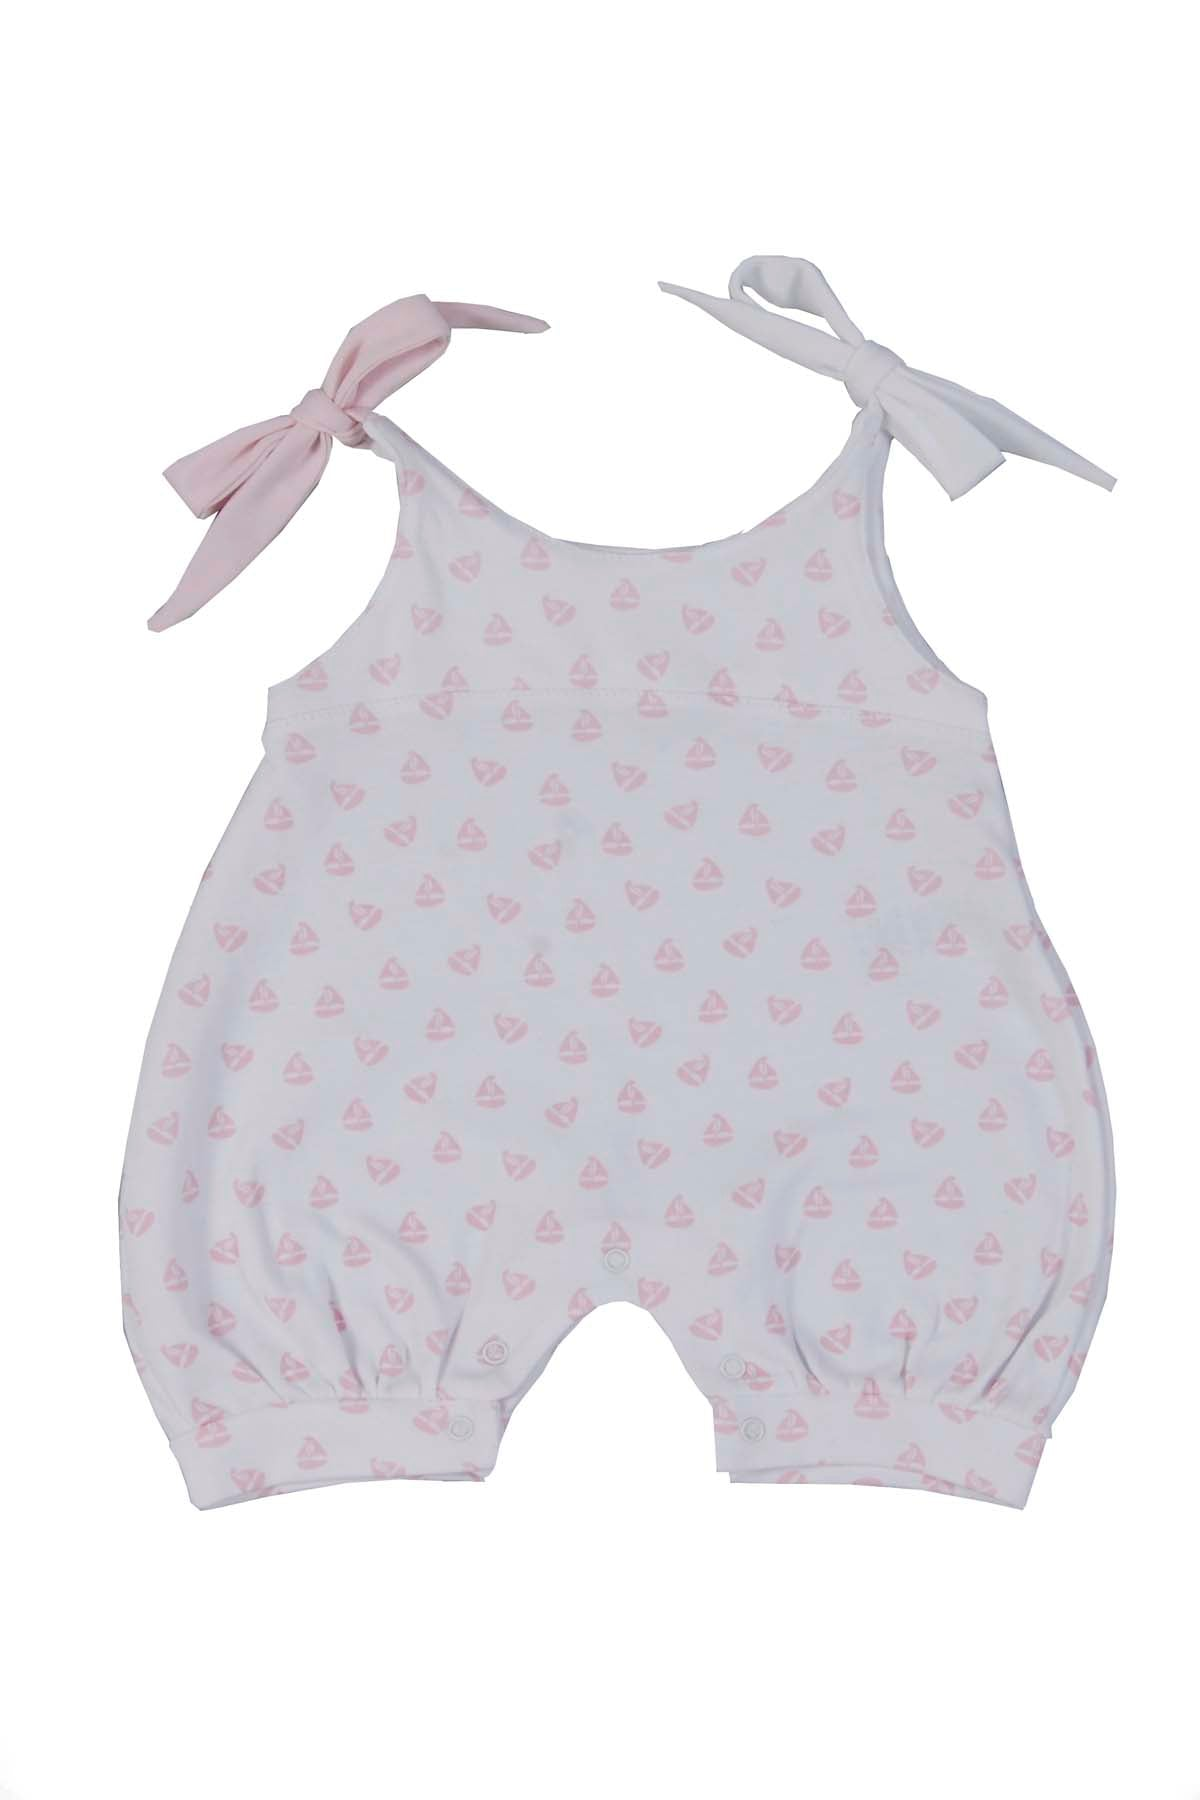 Baby Rompers Pink Boats Pima Cotton